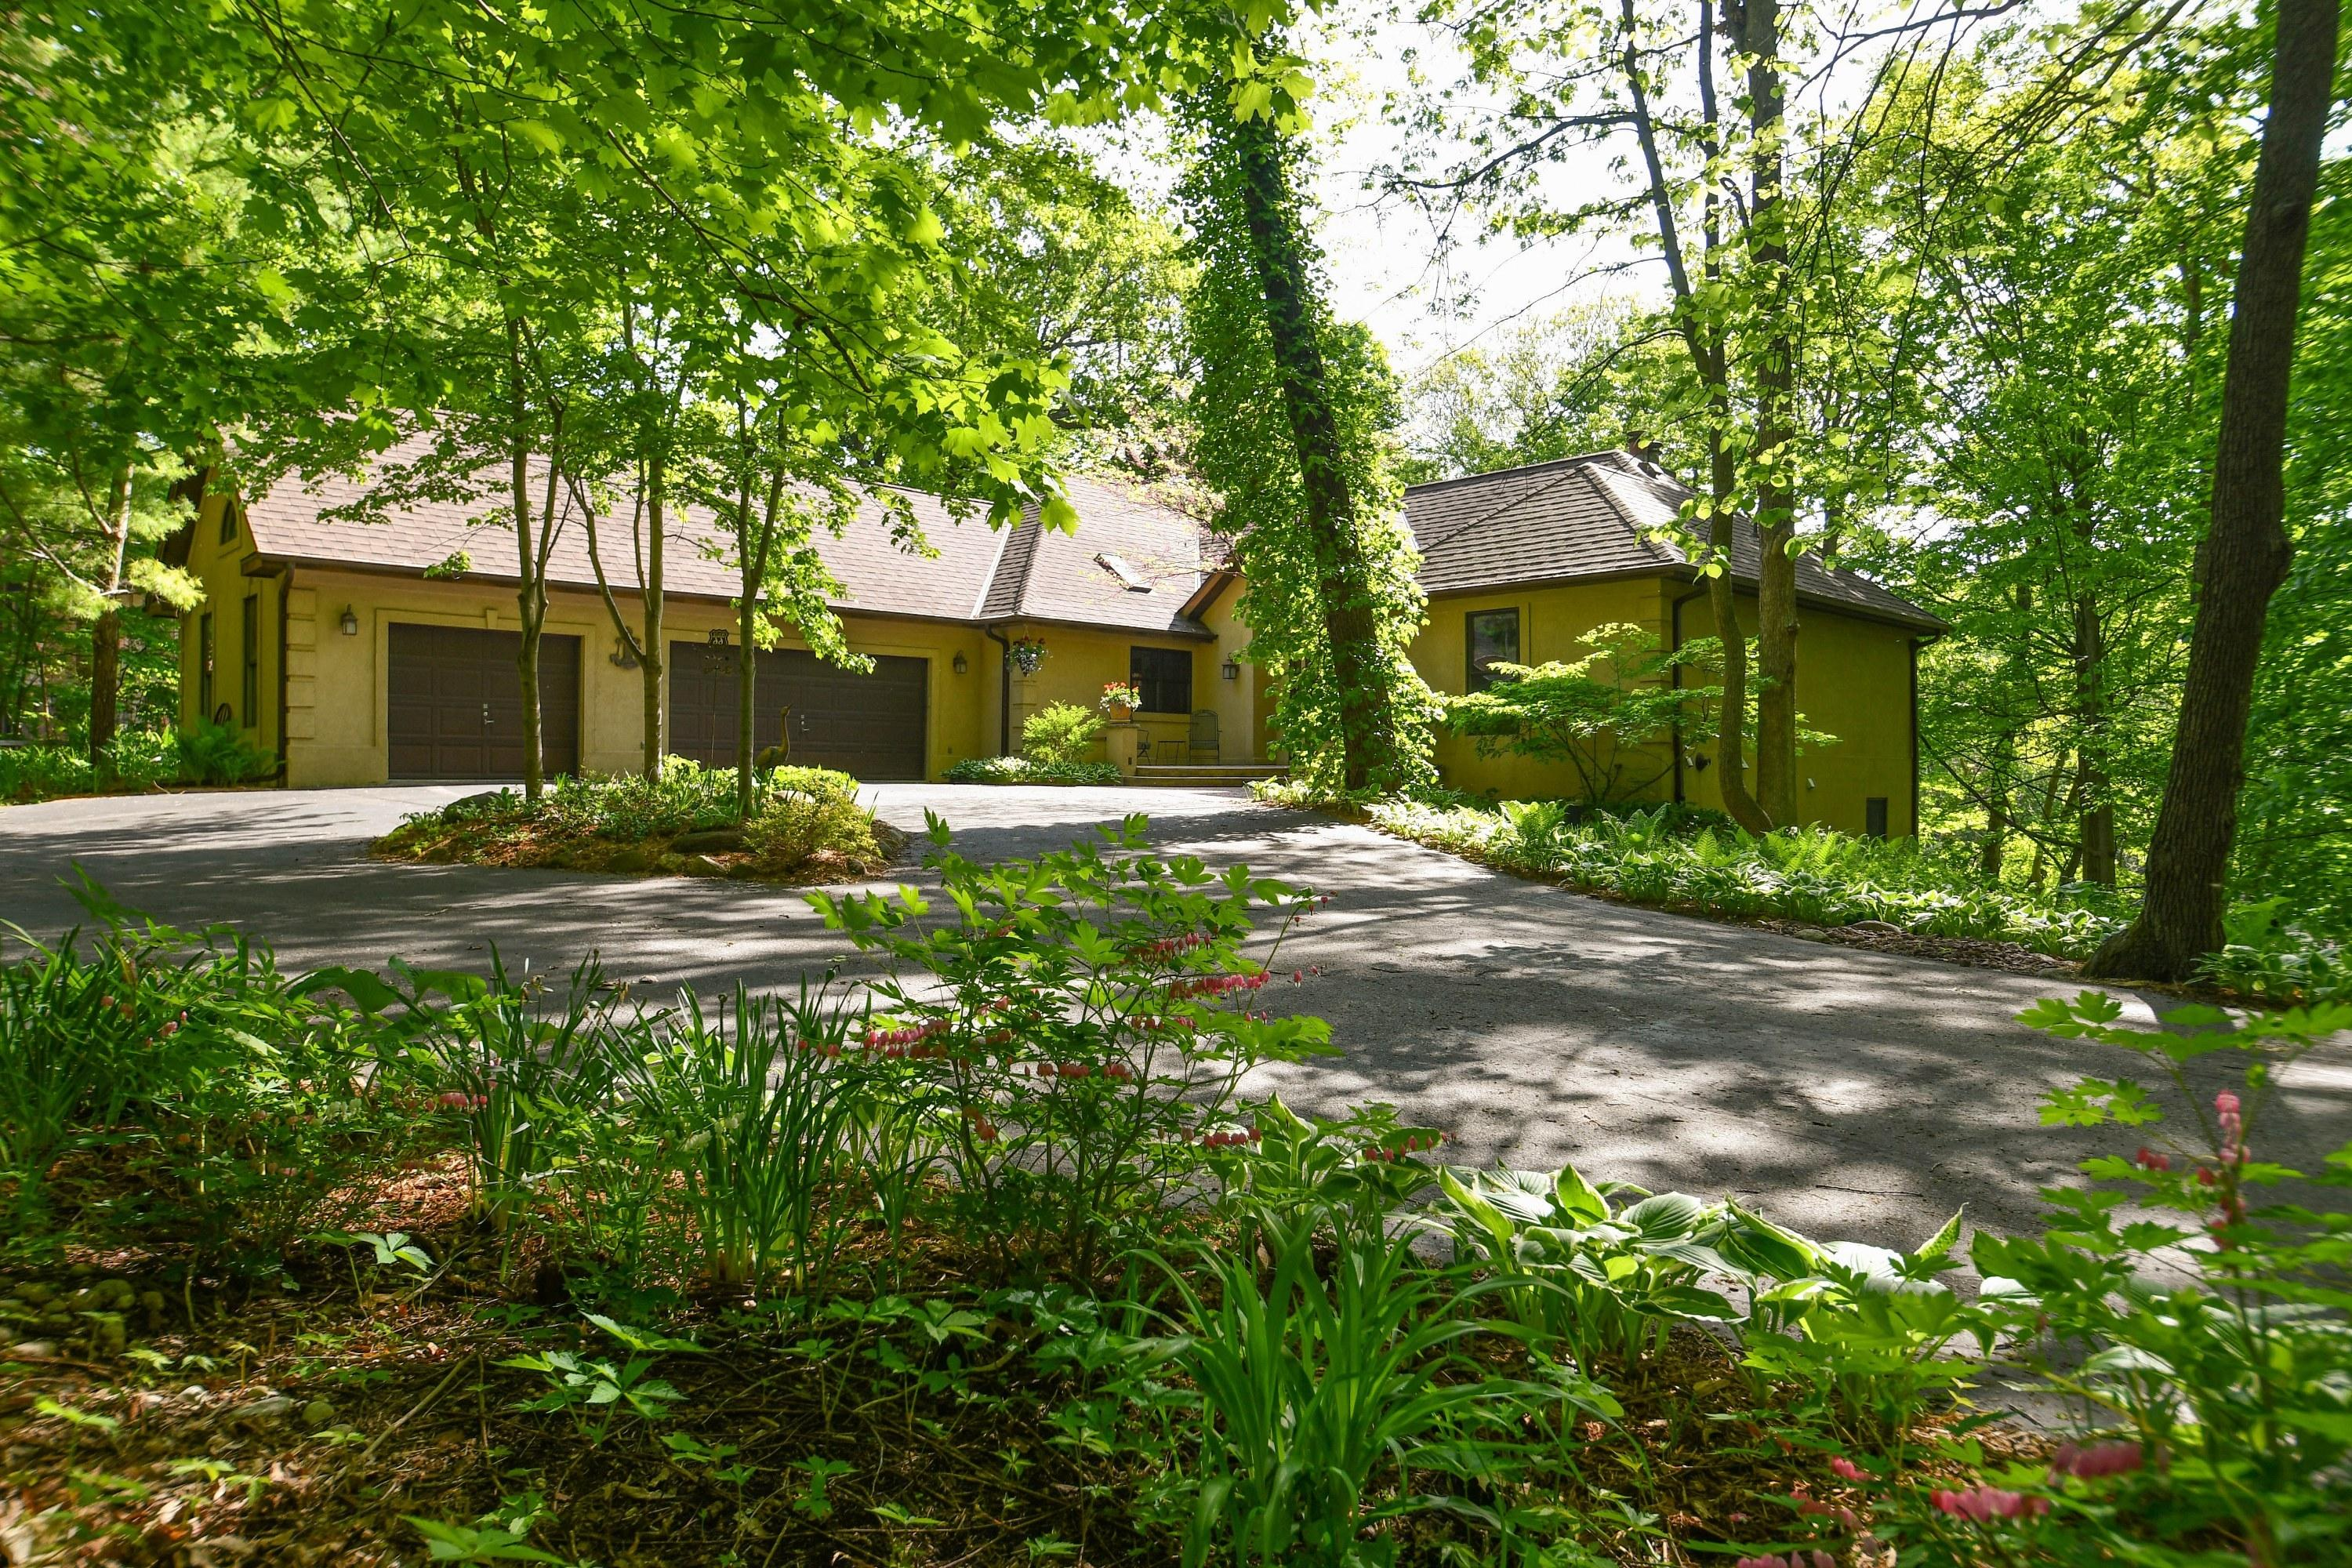 4560 Hewitts Point Rd, Oconomowoc Lake, Wisconsin 53066, 4 Bedrooms Bedrooms, 10 Rooms Rooms,3 BathroomsBathrooms,Single-Family,For Sale,Hewitts Point Rd,1644258